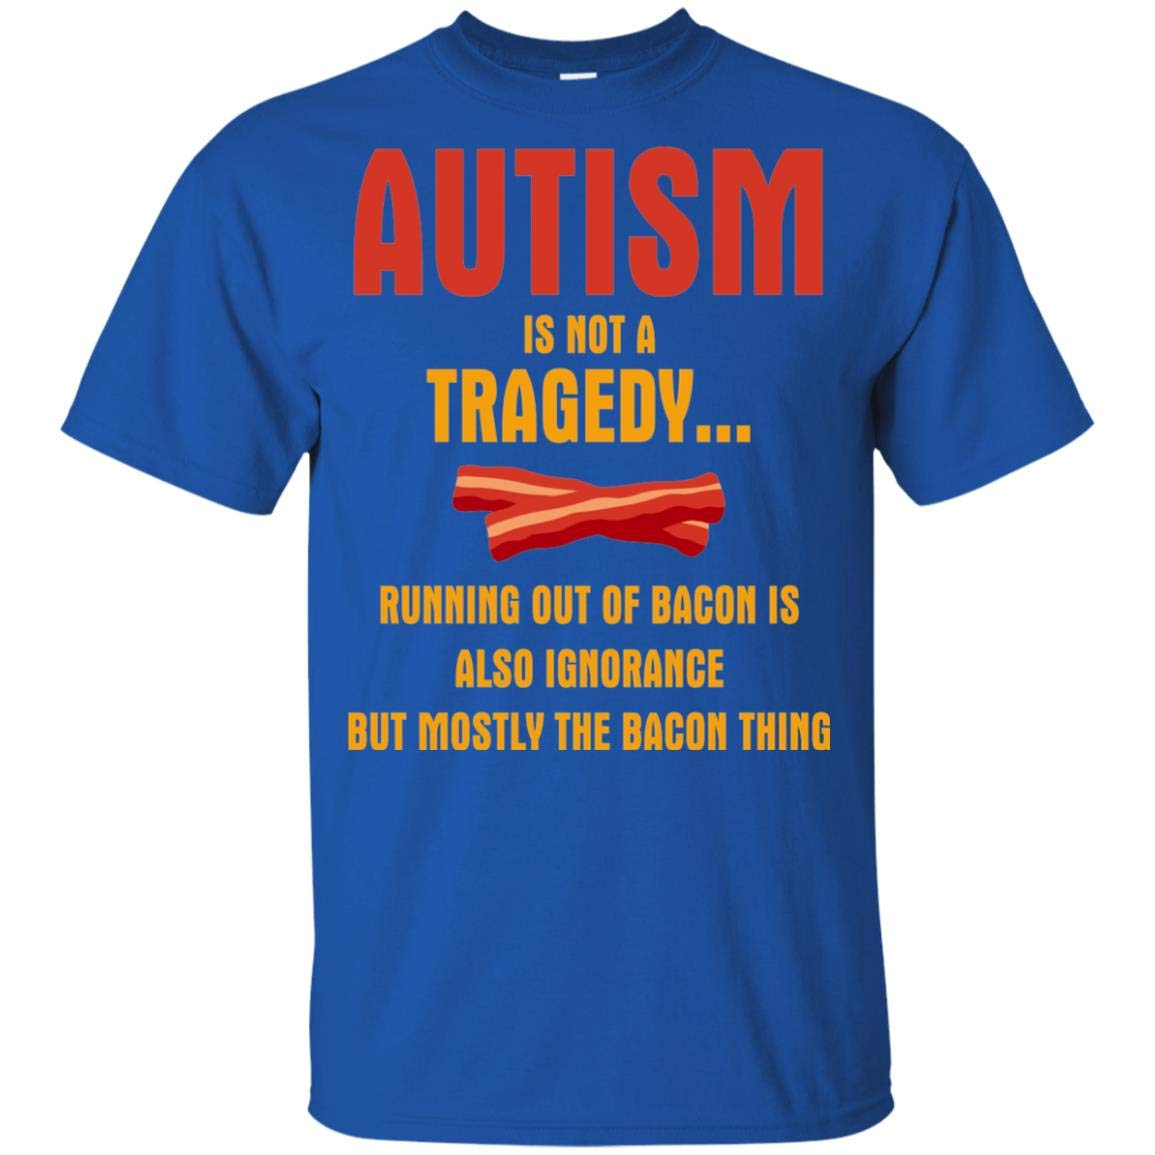 Autism Is Not A Tragedy. Running Out Of Bacon Is Also Ignorance Tshirt Fun Autism Awareness Gift Idea T